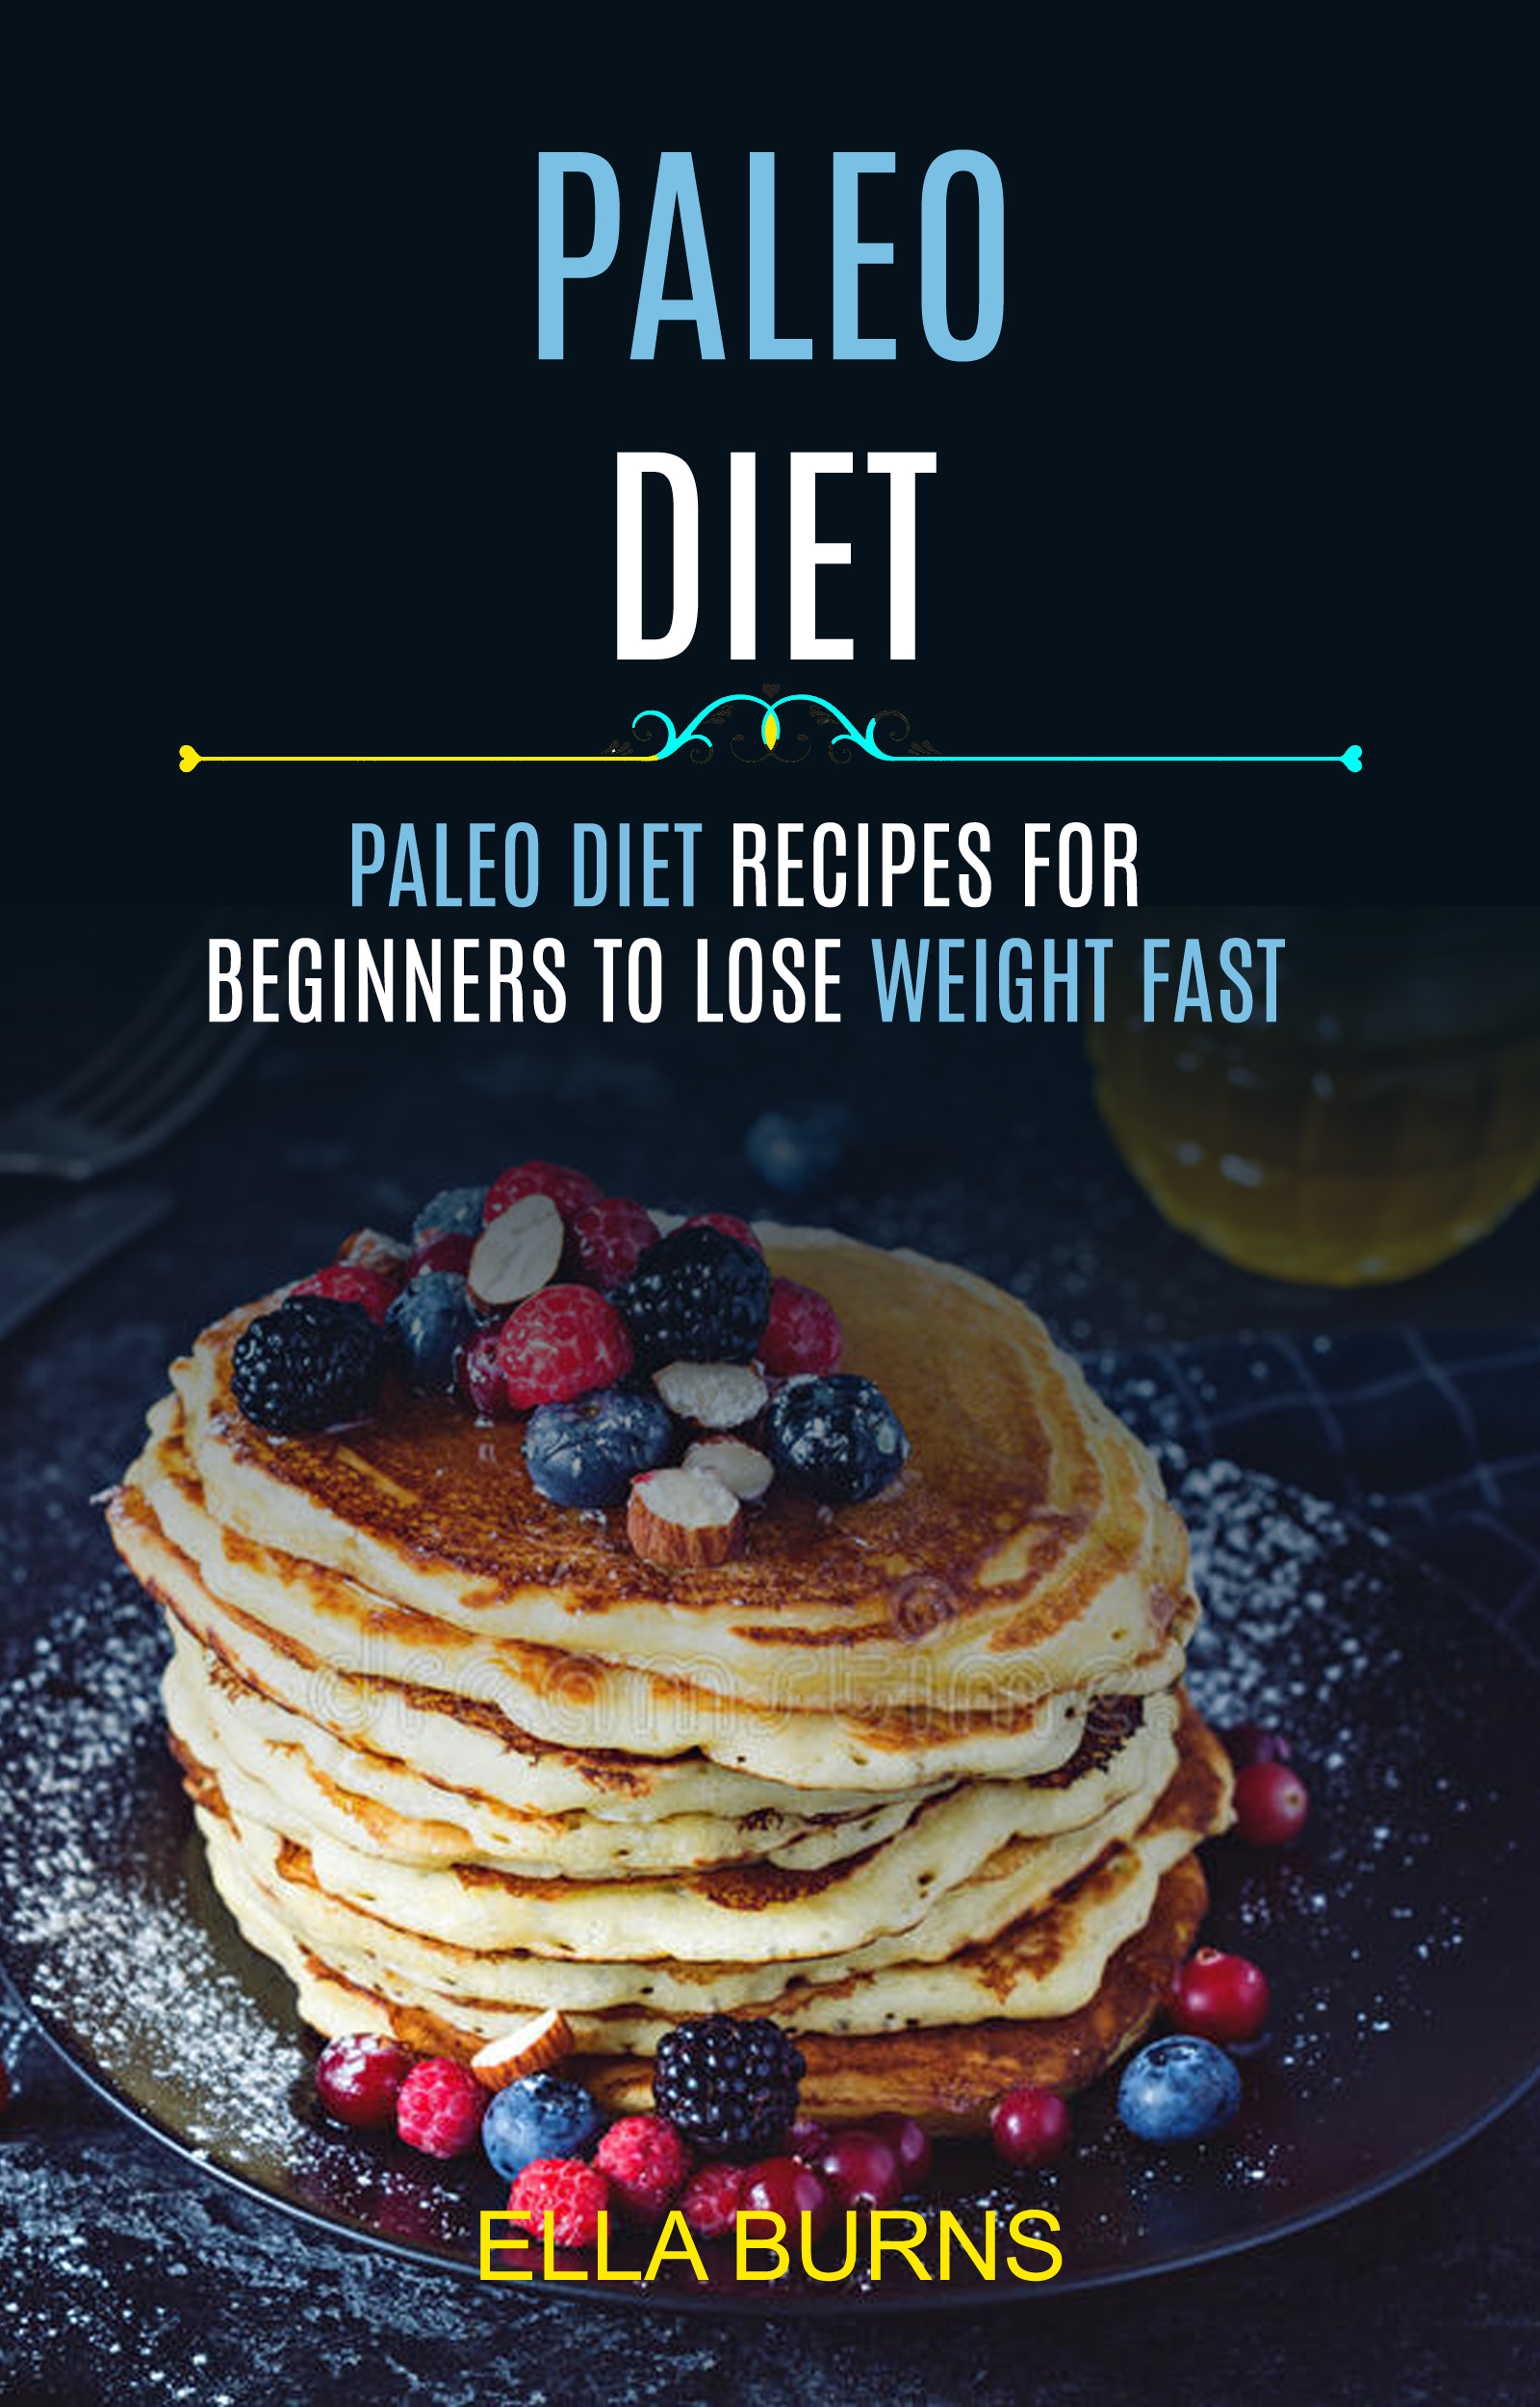 Paleo diet: paleo diet recipes for beginners to lose weight fast